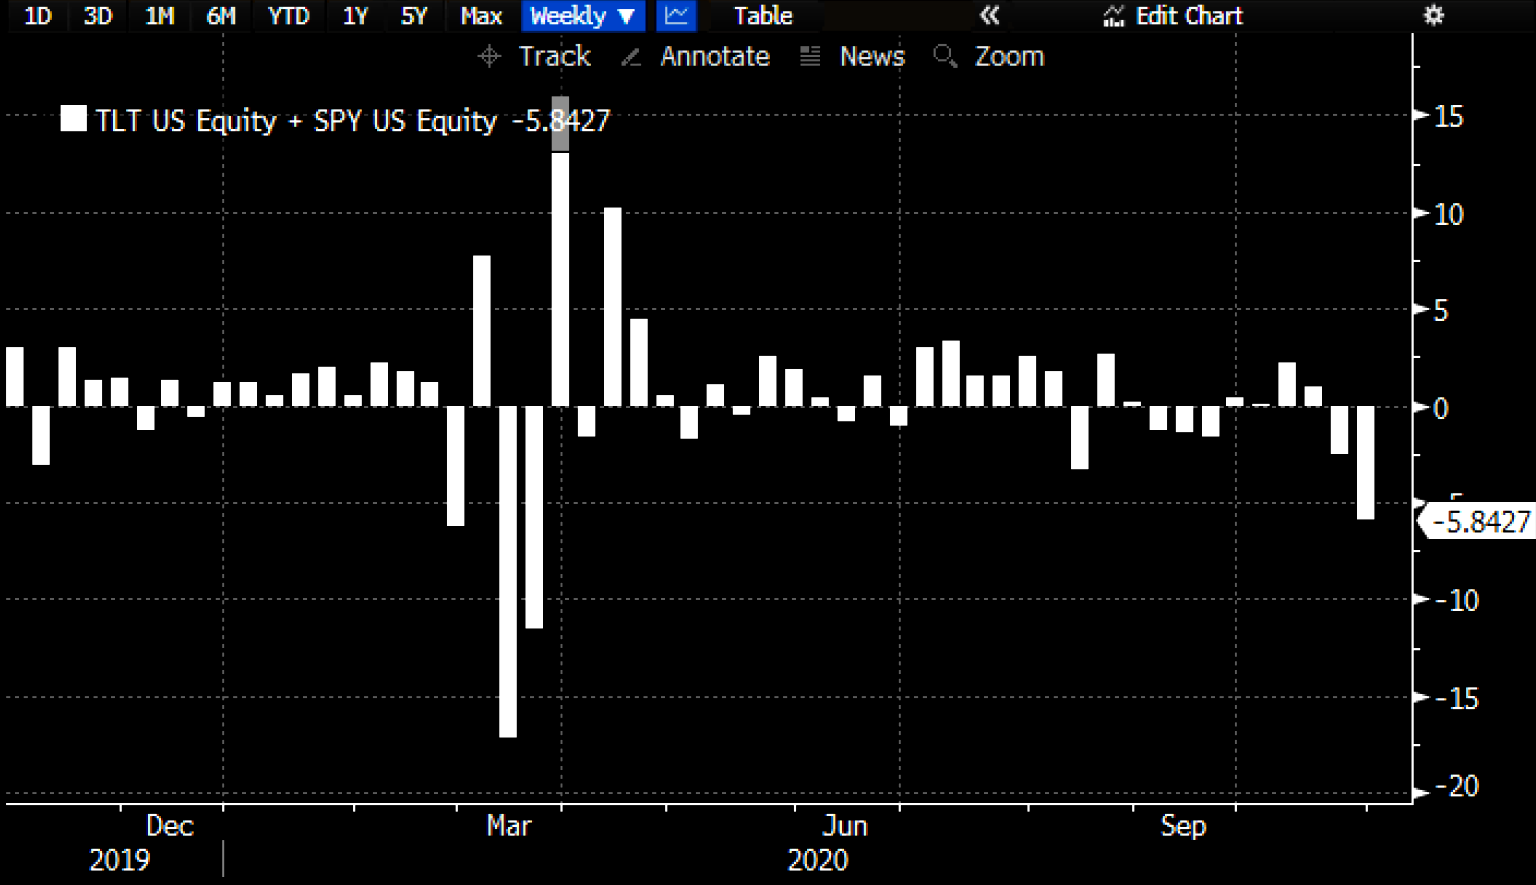 biggest combined weekly losses for TLT + SPY since March